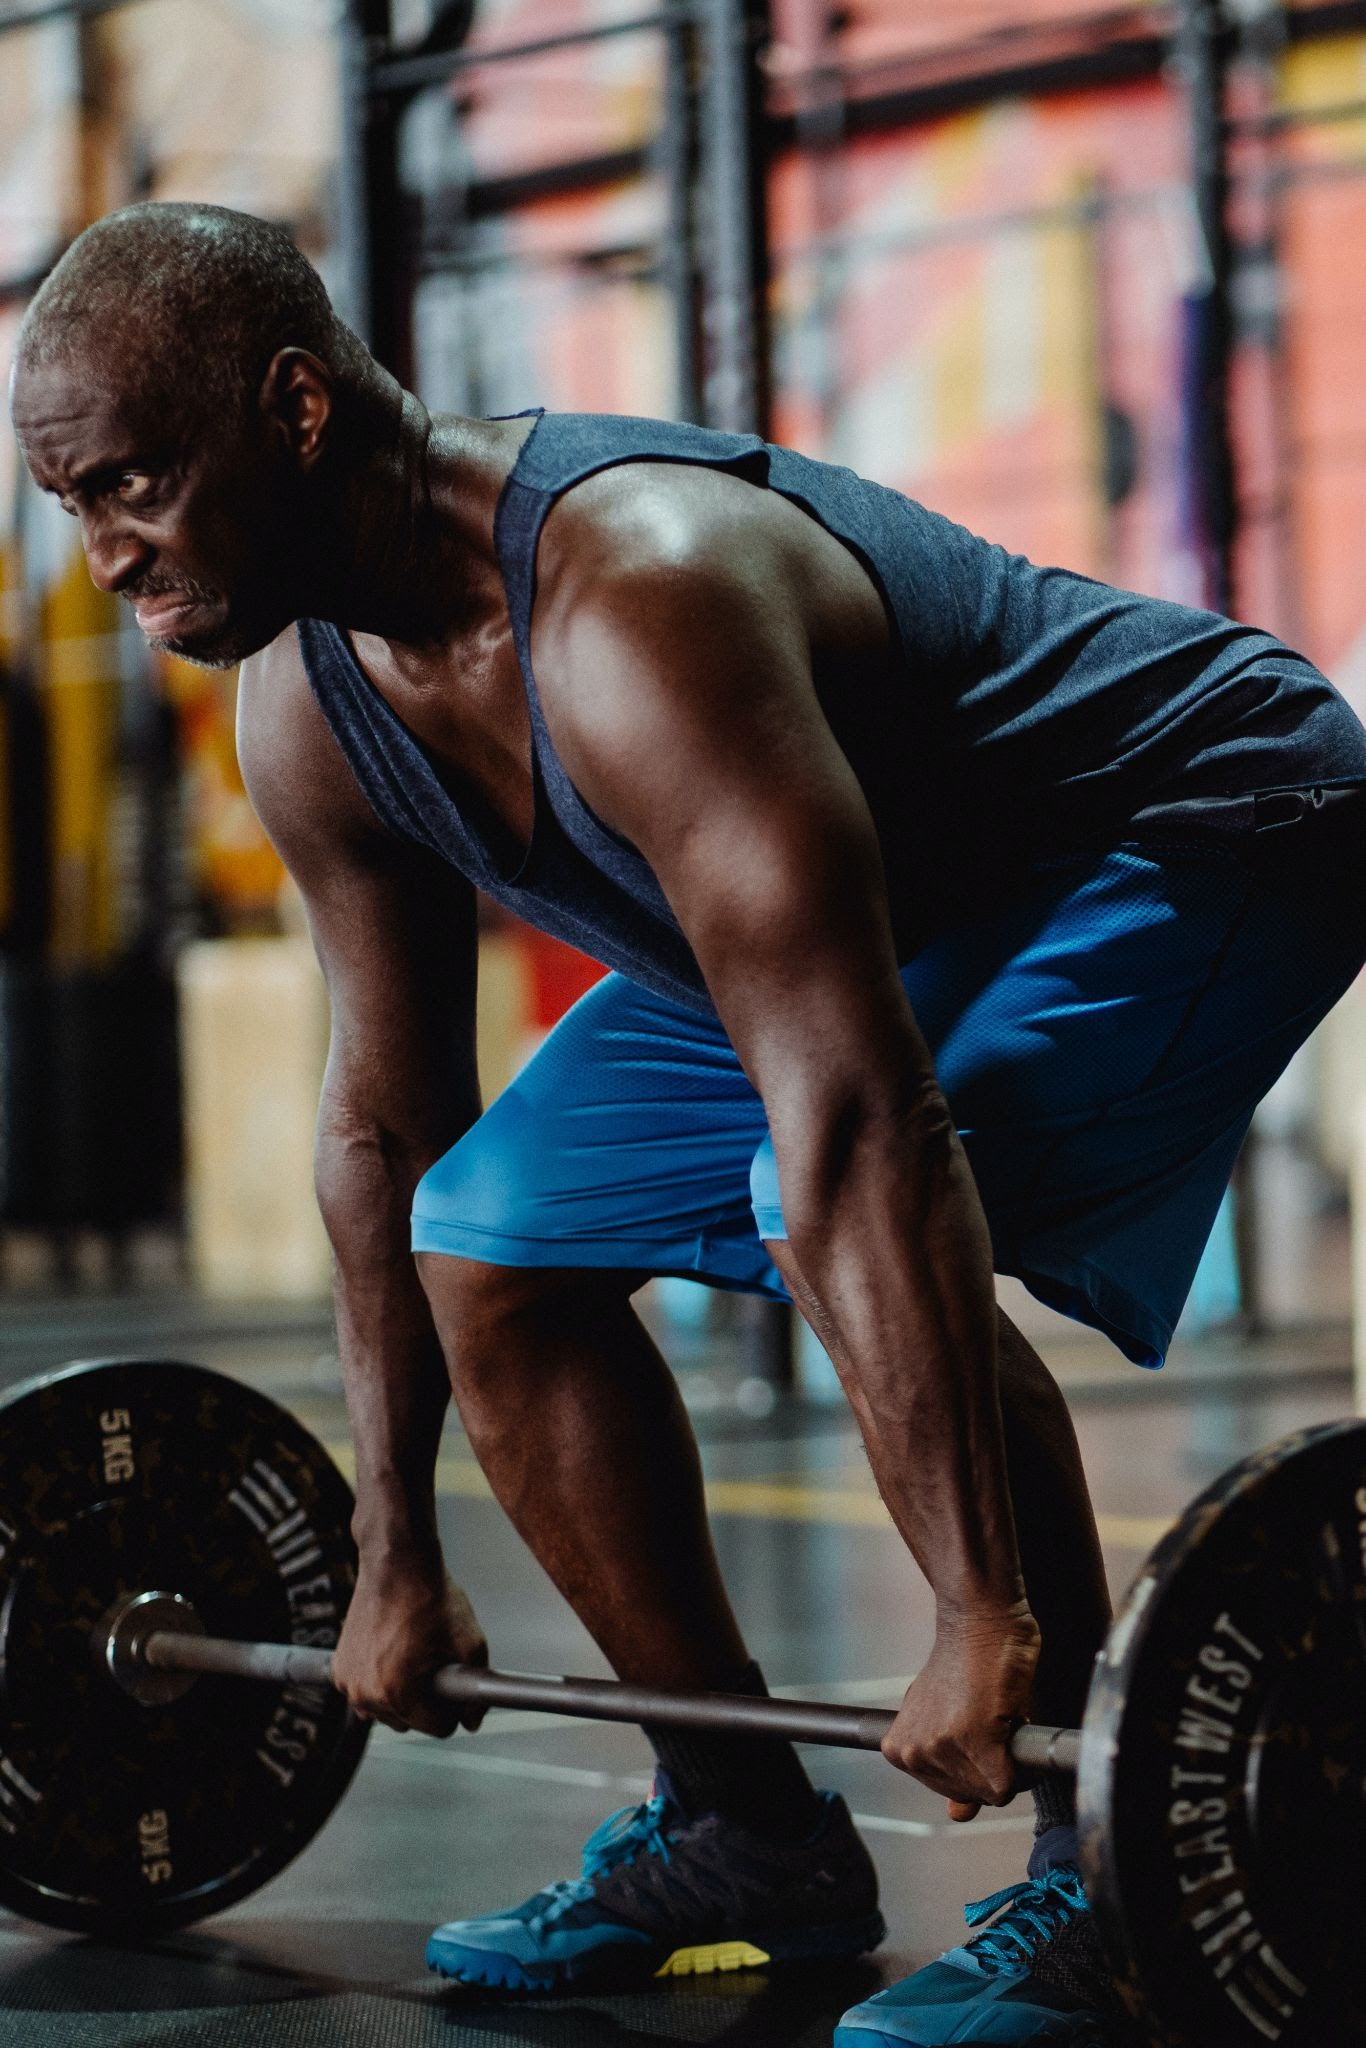 athlete deadlifting a heavy weight